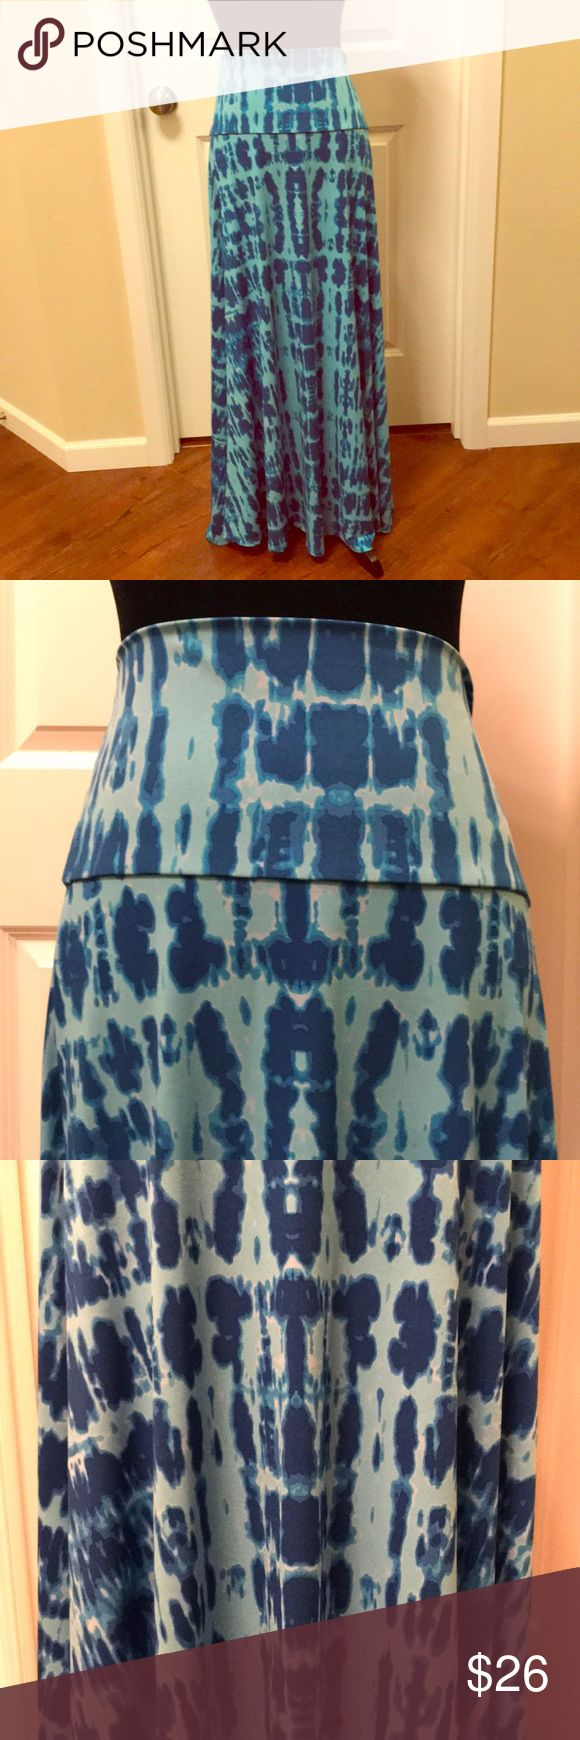 LuLaRoe Maxi Skirt 💐💐 Beautiful tie dye look with foldable yoga waistband💐Very flowy 💐Can be used as a strapless dress 💐Size tag is XL ...use size chart XL is equal to a size 20/22 💐EUC LuLaRoe Skirts Maxi